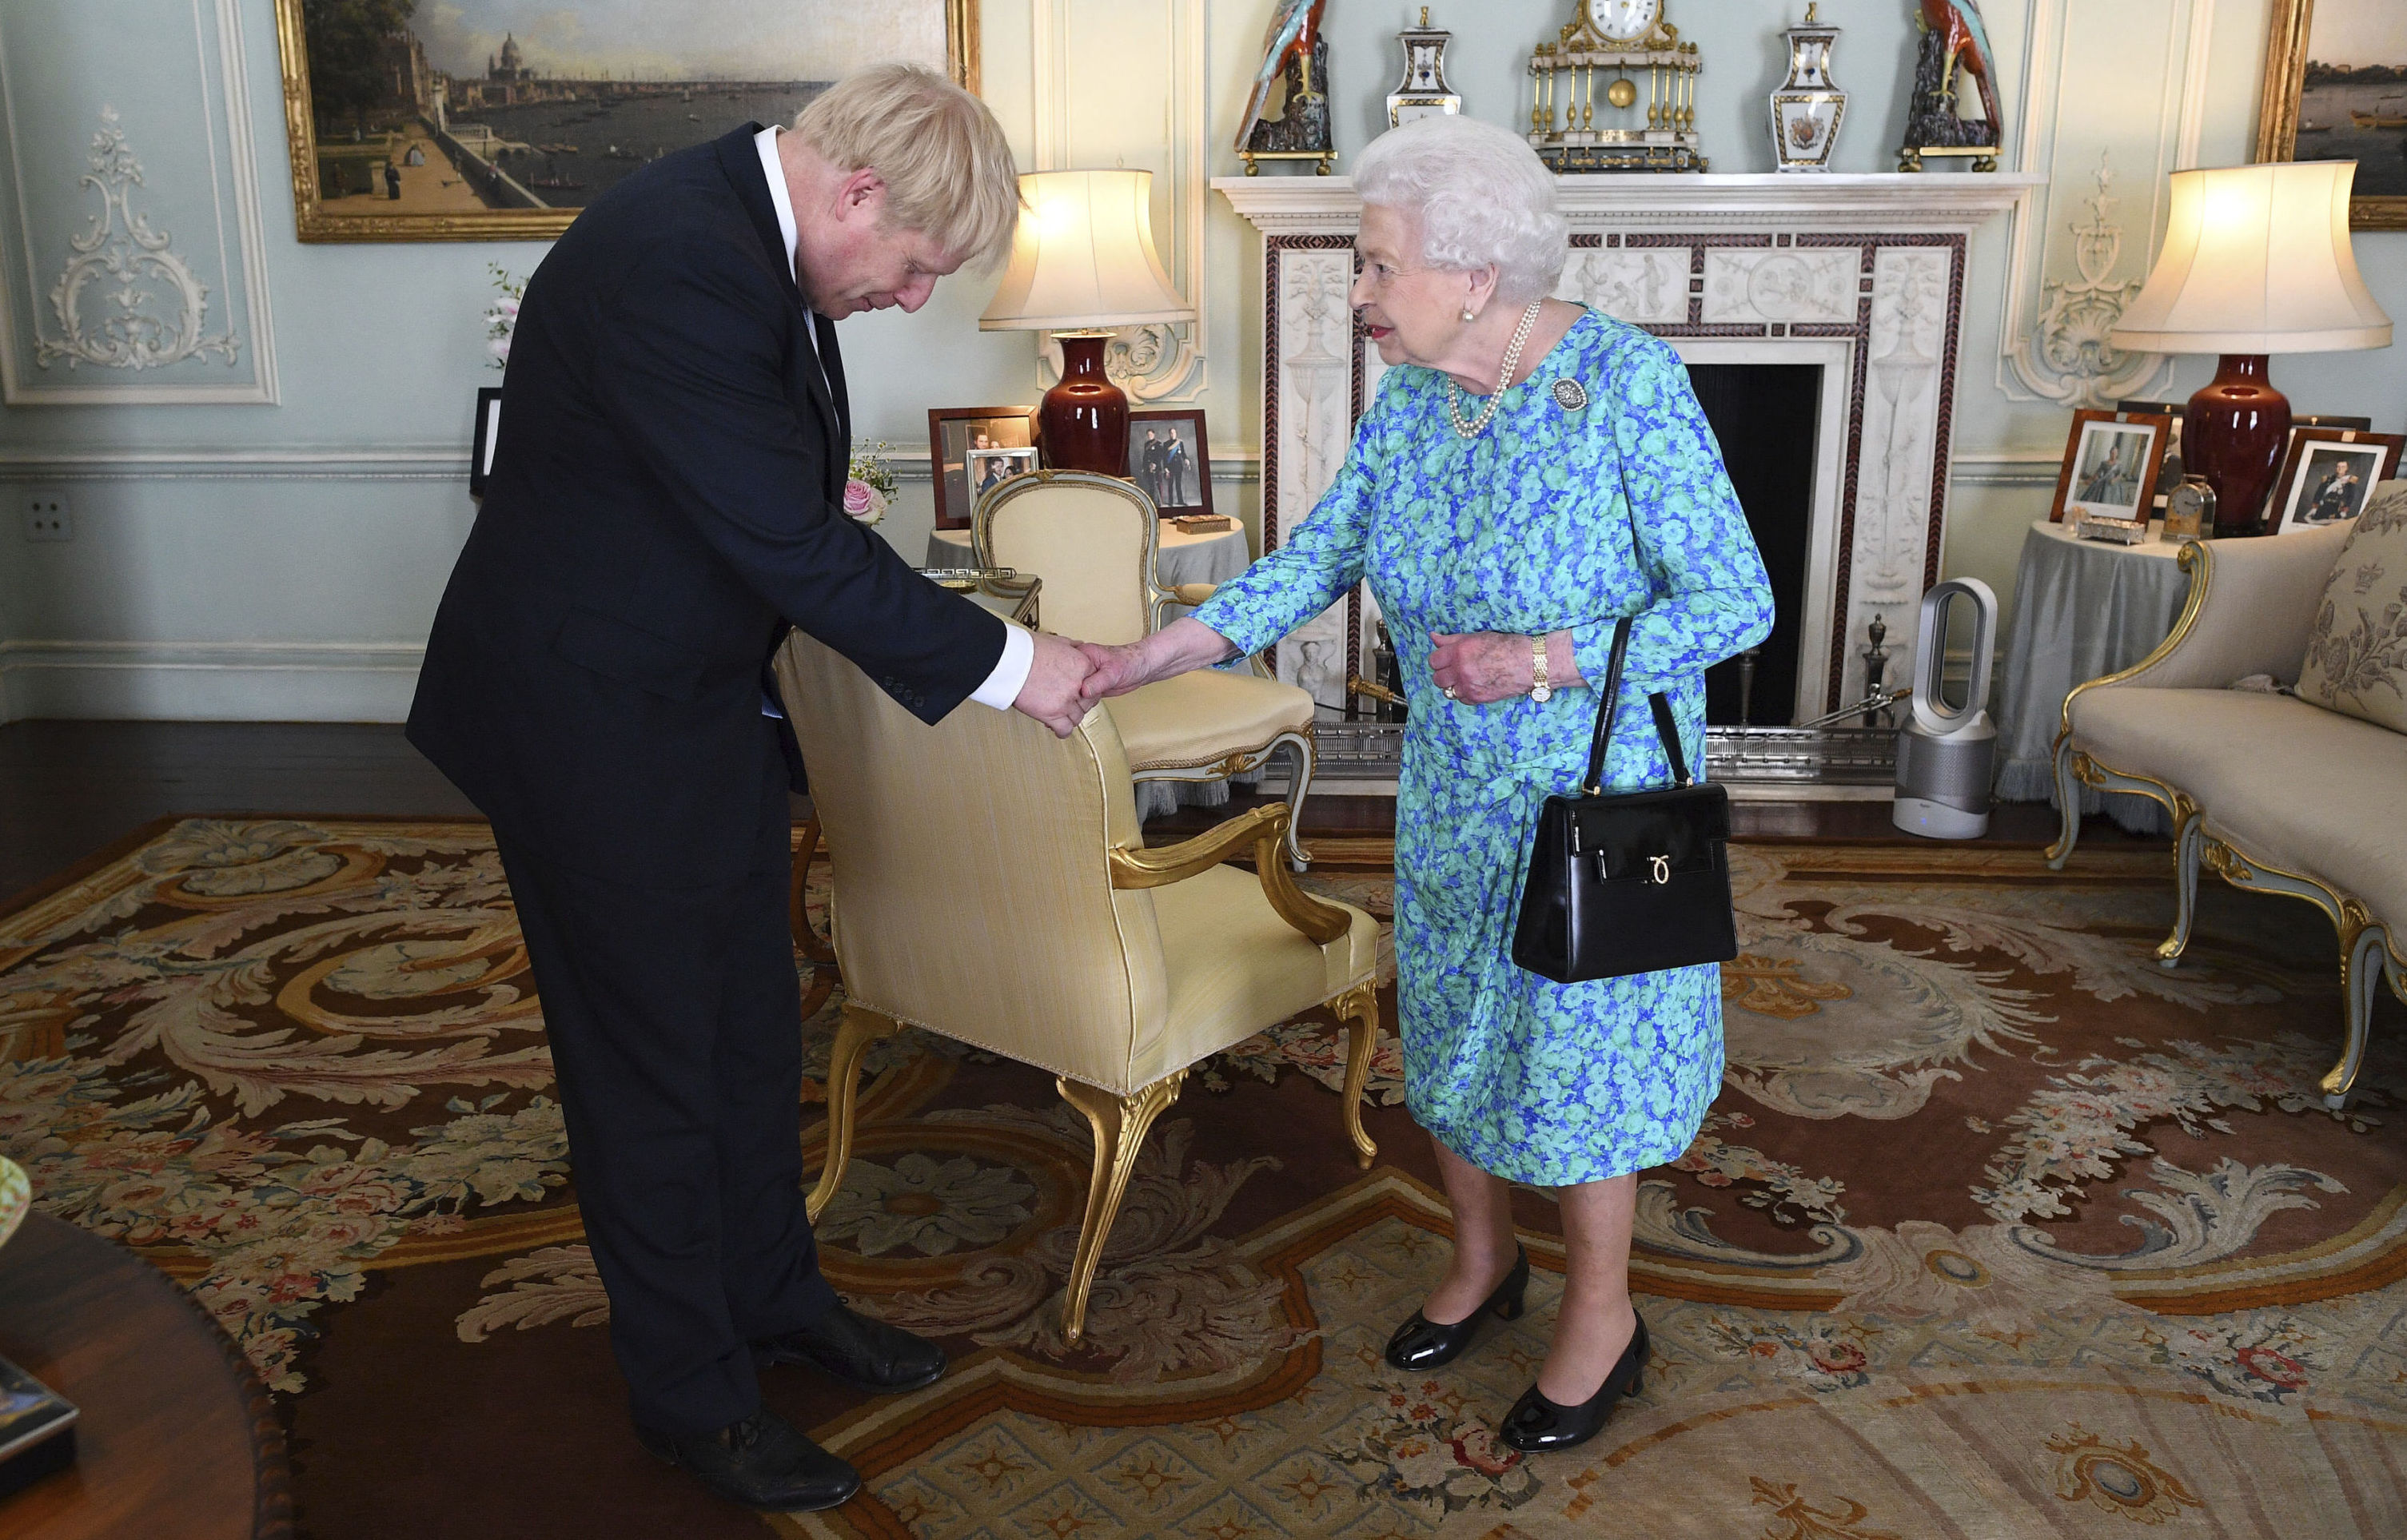 Britain's Queen Elizabeth II welcomes newly elected leader of the Conservative party Boris Johnson during an audience at Buckingham Palace, London, Wednesday July 24, 2019, where she invited him to become Prime Minister and form a new government